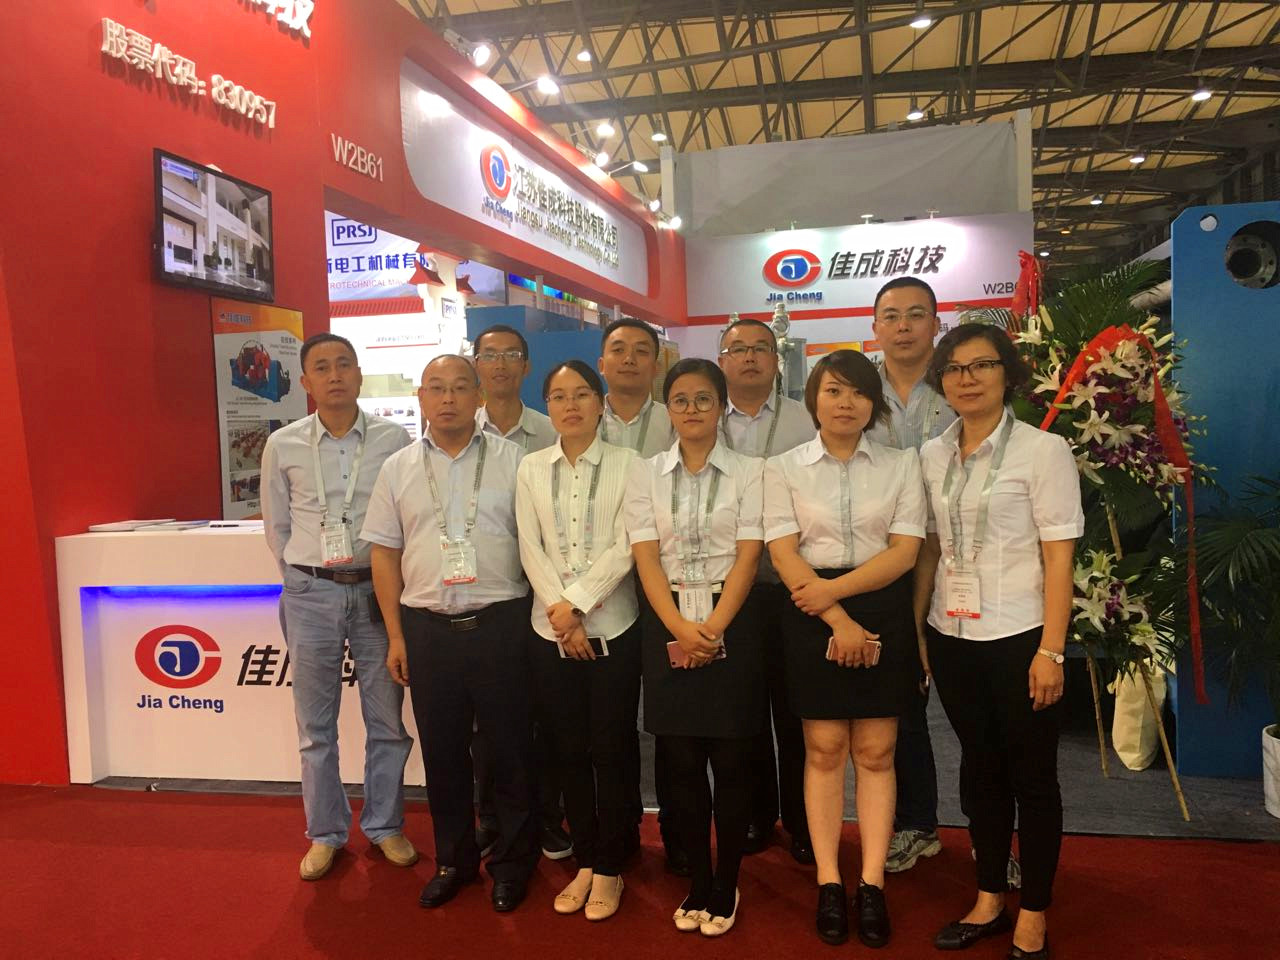 JIACHENG ATTENDED THE 7TH ALL CHINA-INTERNATIONAL WIRE&CABLE INDUSTRY TRADE FAIR